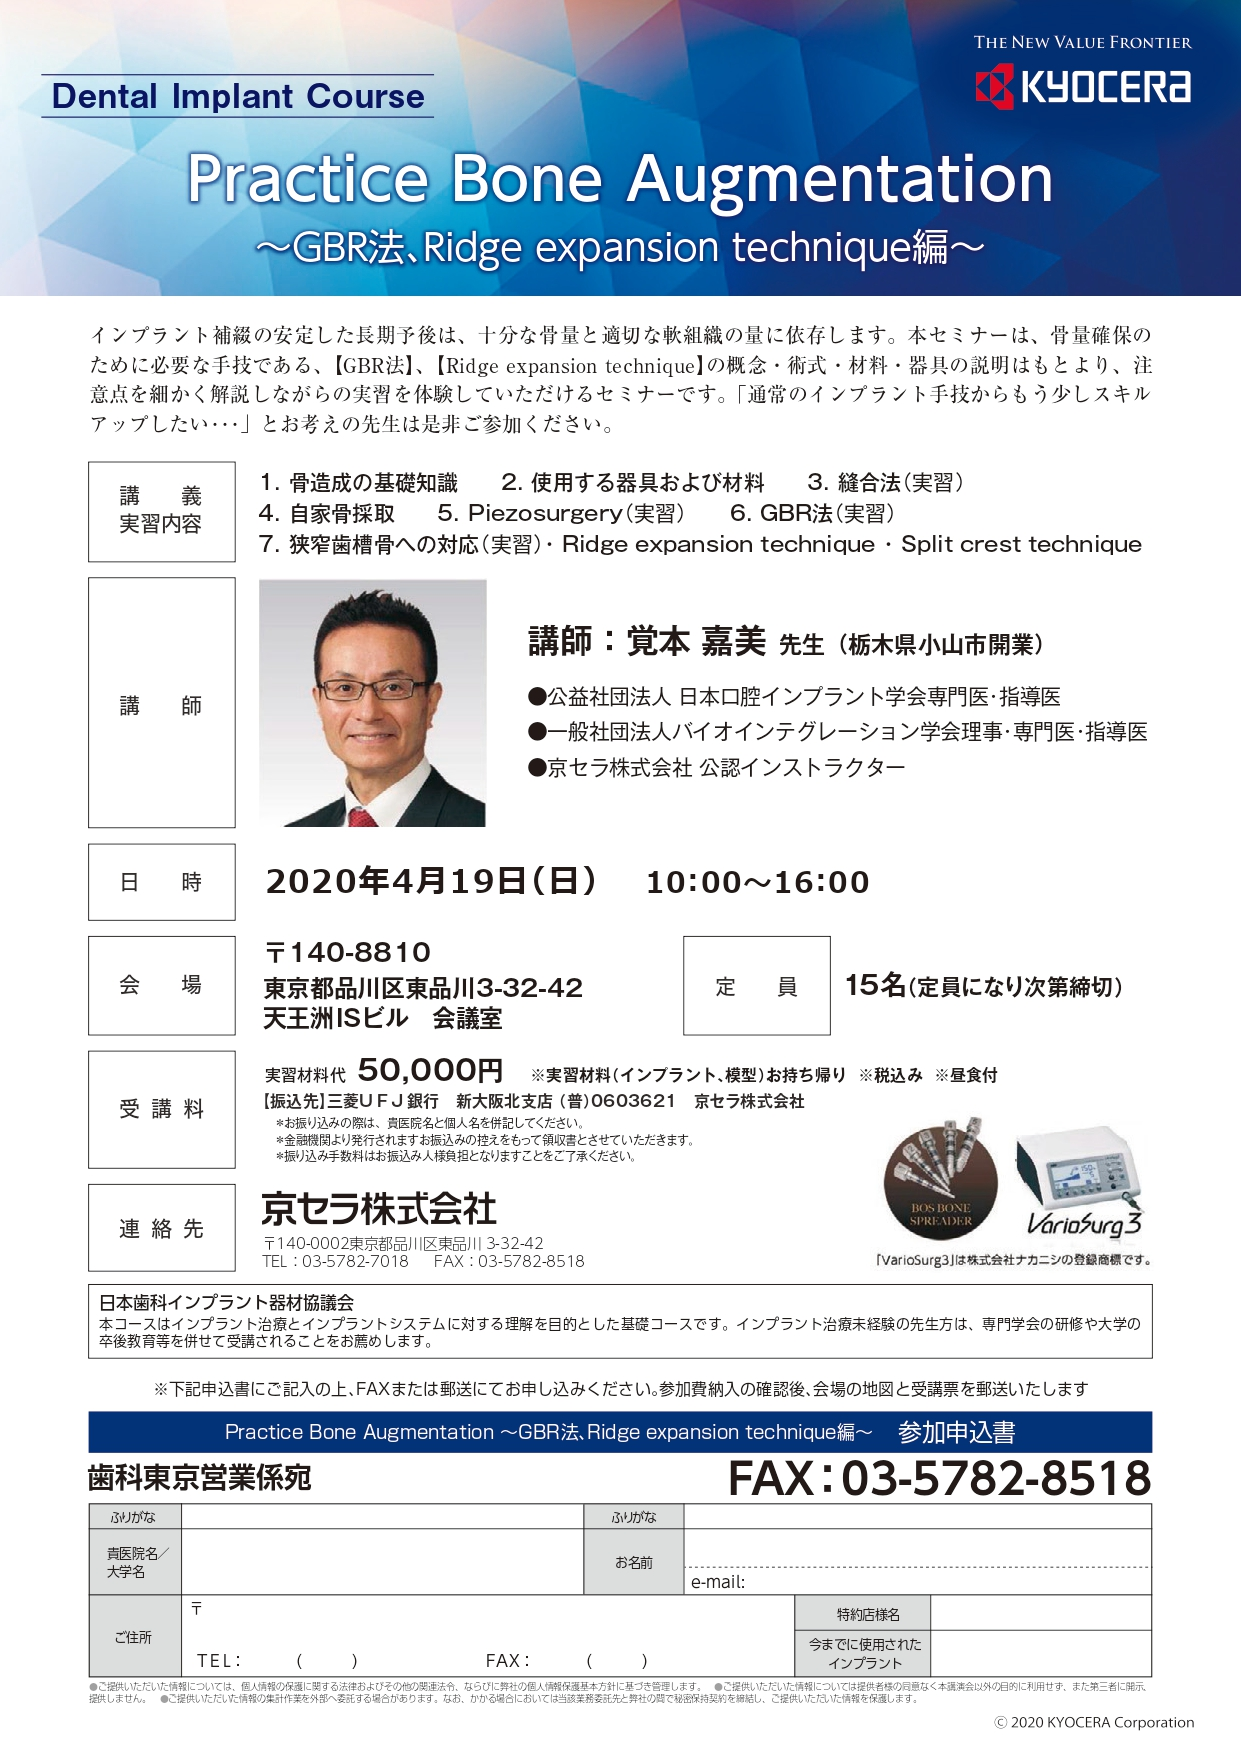 【開催中止】【Dental Implant Course】Practice Bone Augmentation ~GBR法、Ridge expansion technique編~